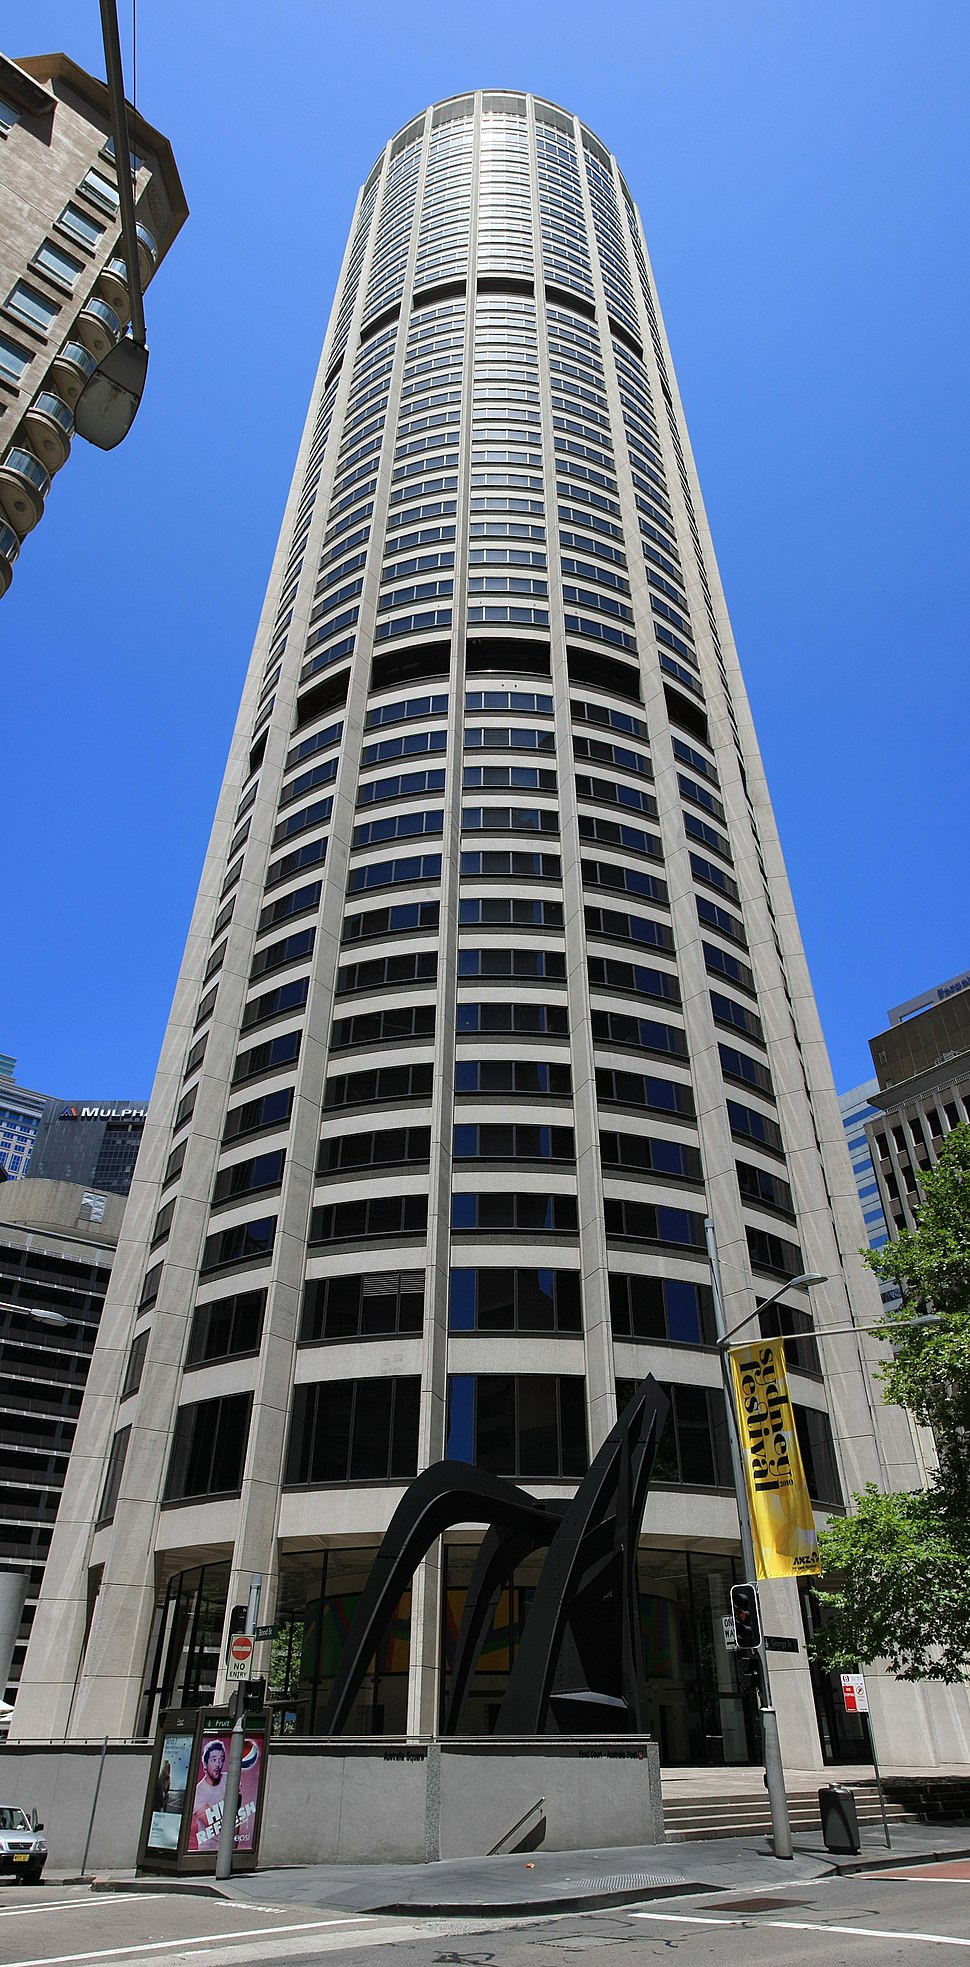 Australia Square building in George Street Sydney